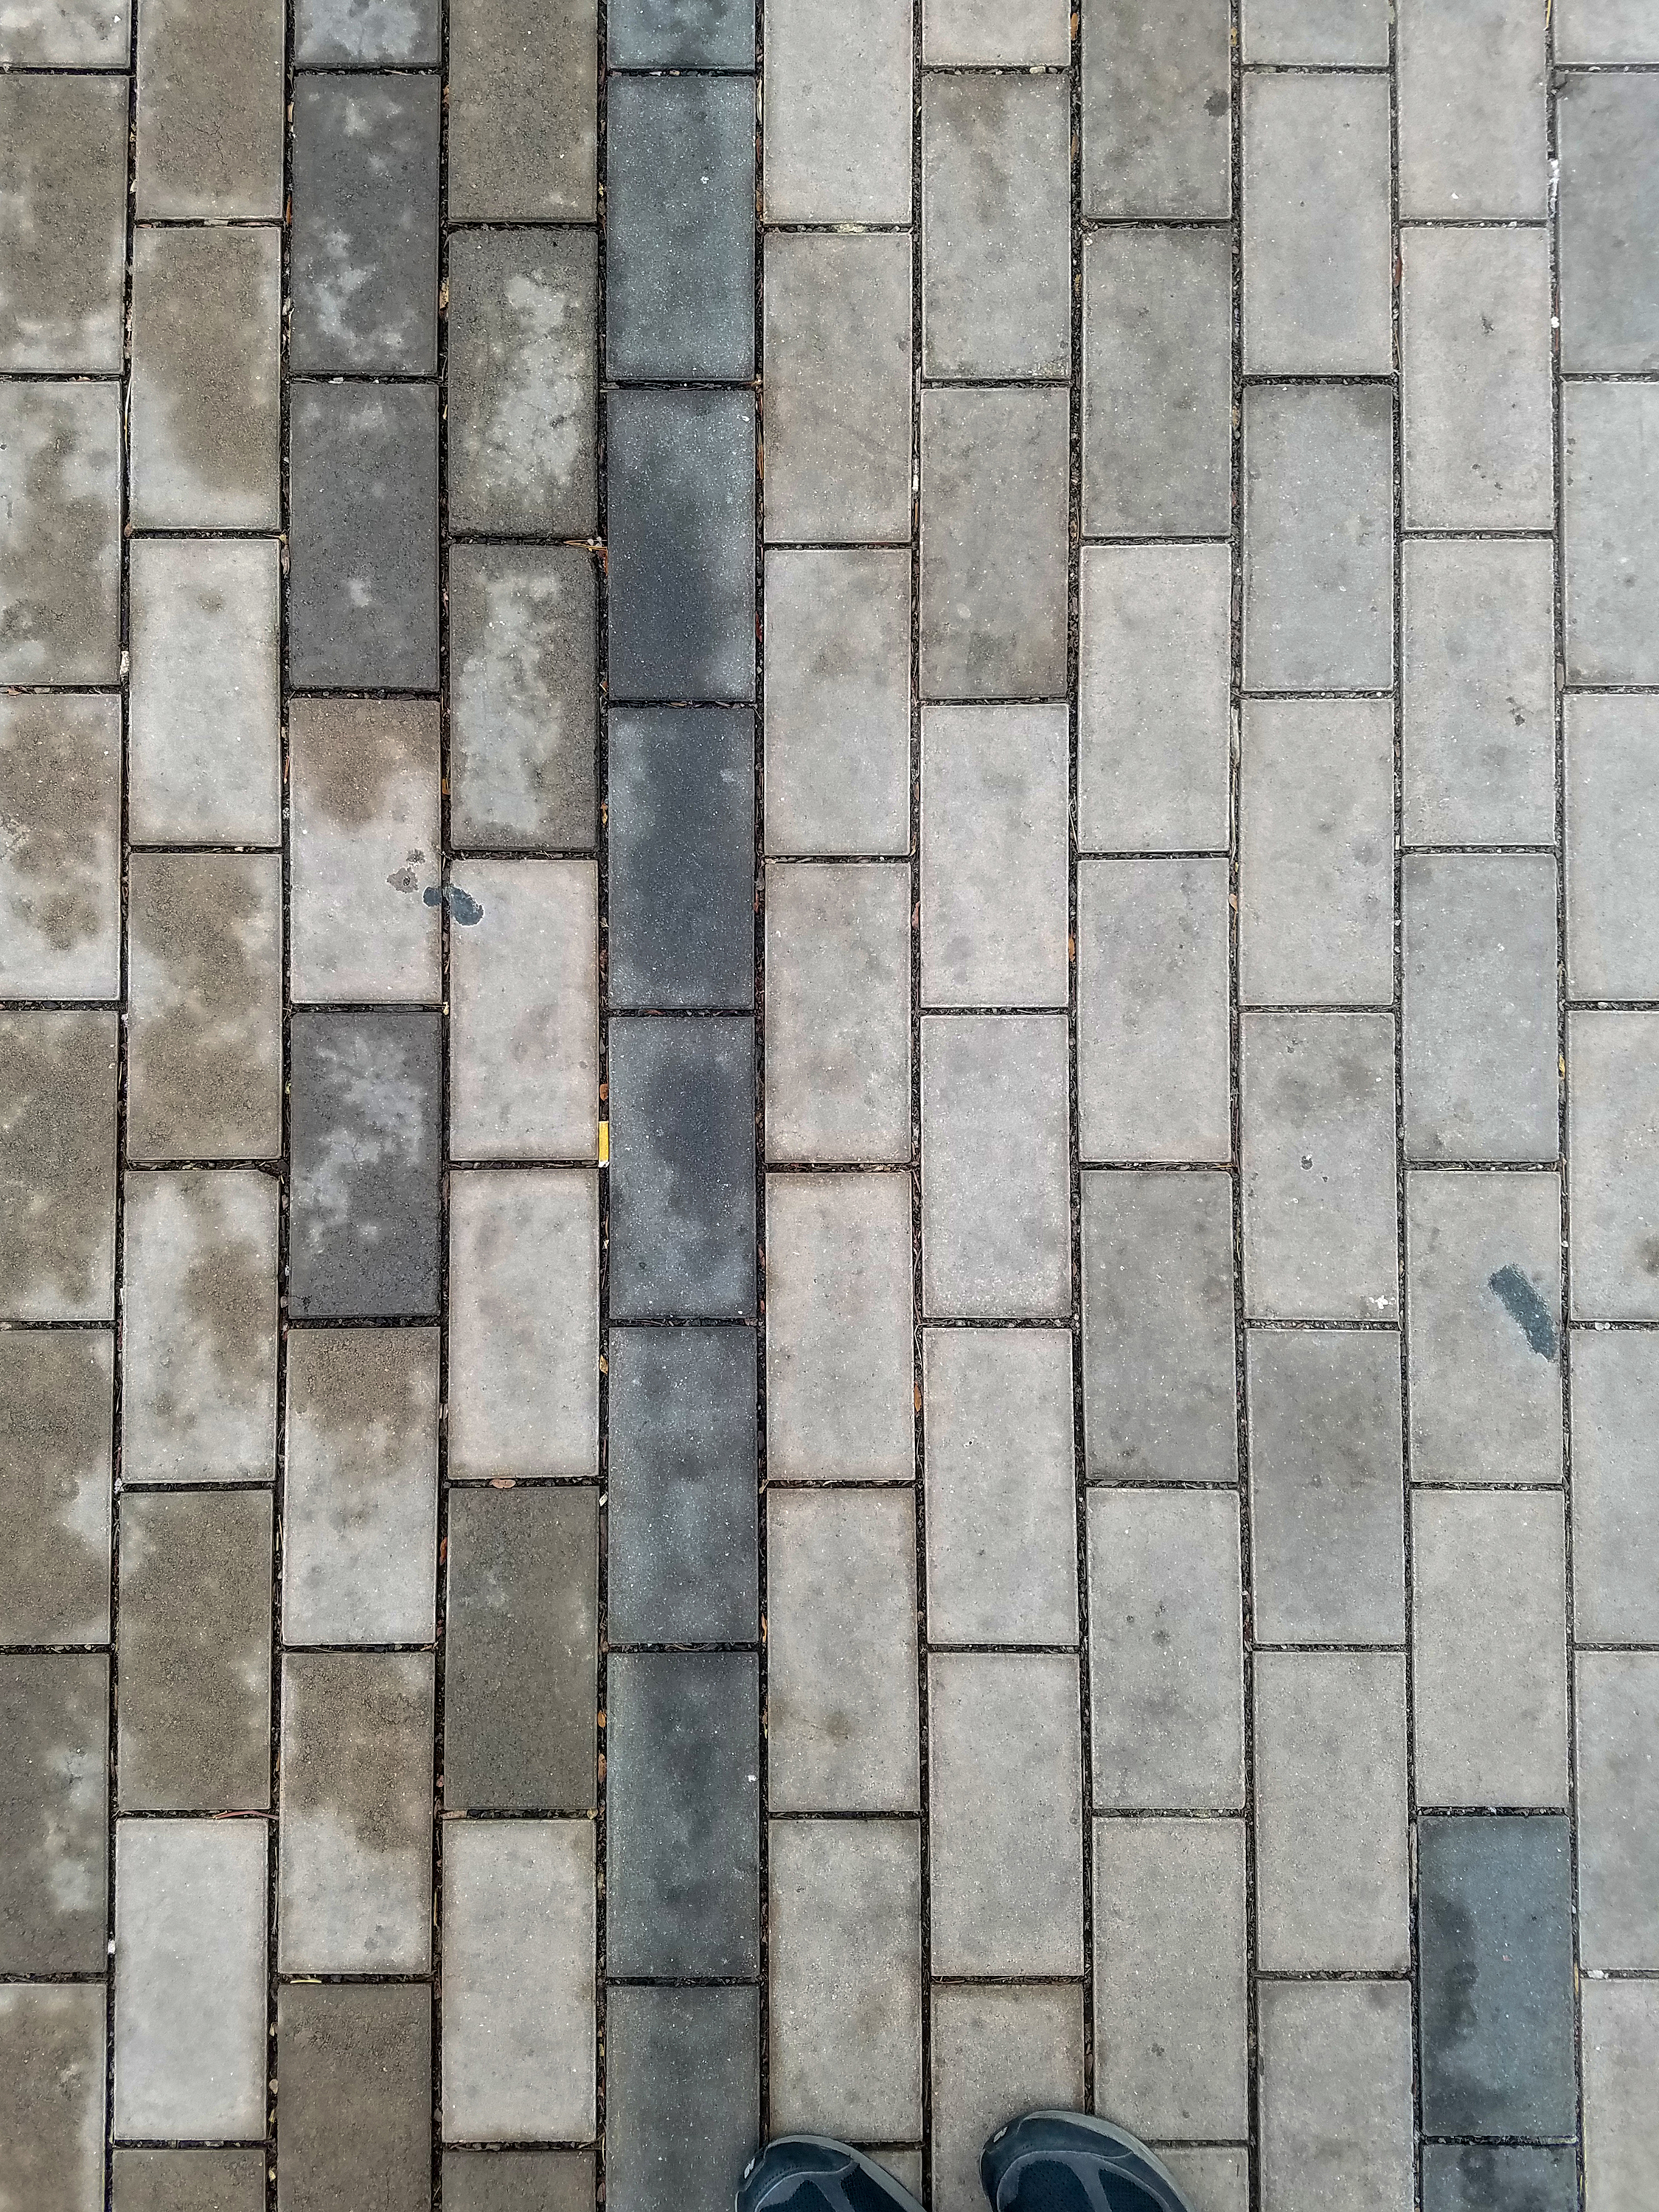 The main pathways leading from the Colfax at auraria station into the campus have brick patterns that are parallel with the foot-traffic. Most of the bricks are of a lighter tone, but some are darker and more blue in hue. Debris and discarded cigarettes can sometimes be seen between the joins.